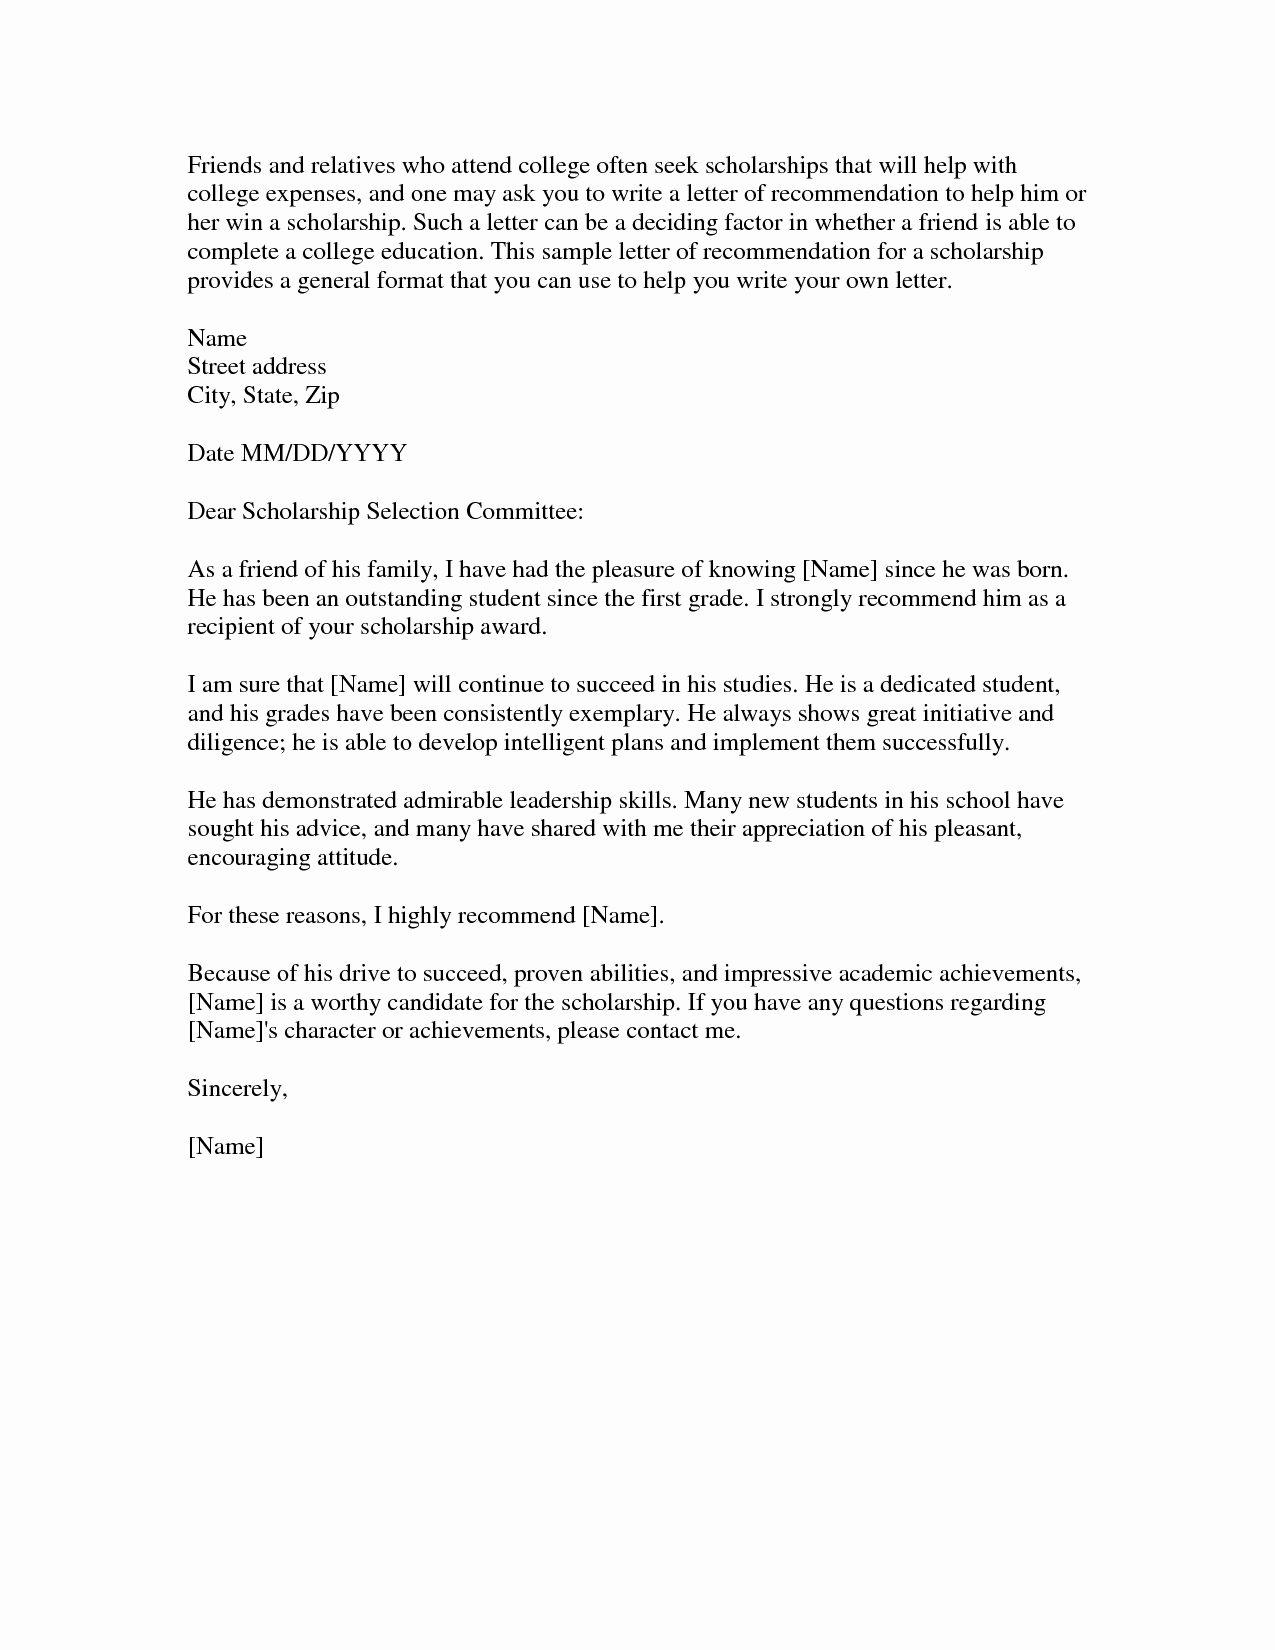 Recommendation Letter for College Scholarship Beautiful Download Scholarship Re Mendation Letter Sample Word